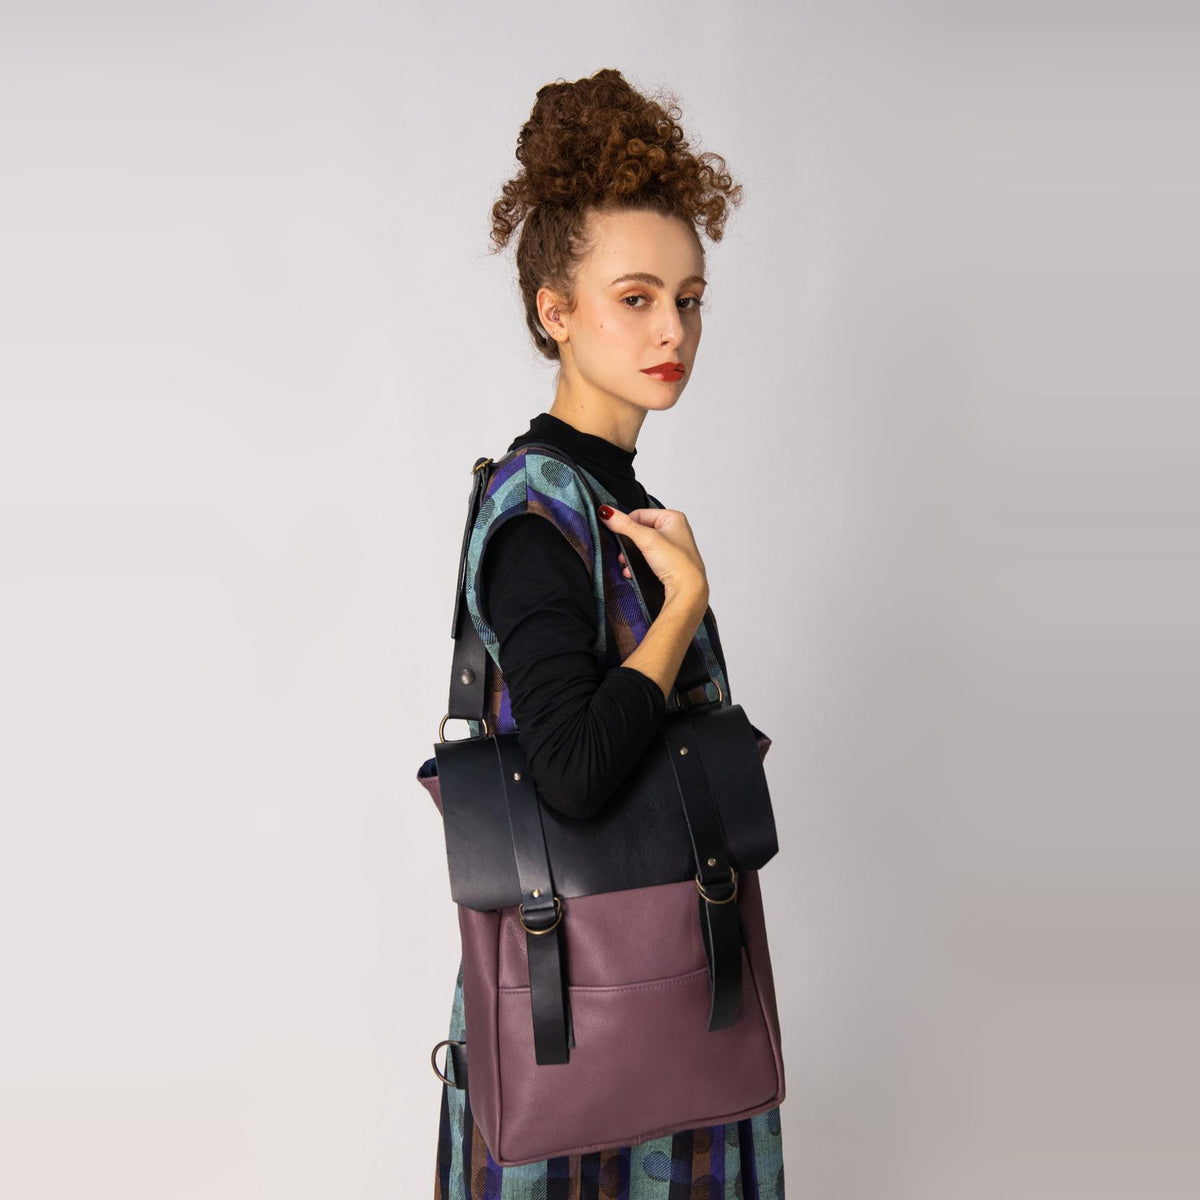 Model Wearing a Old Purple & Black Handcrafted Leather Backpack / Crossbody Bag - Sold by Chic & Basta